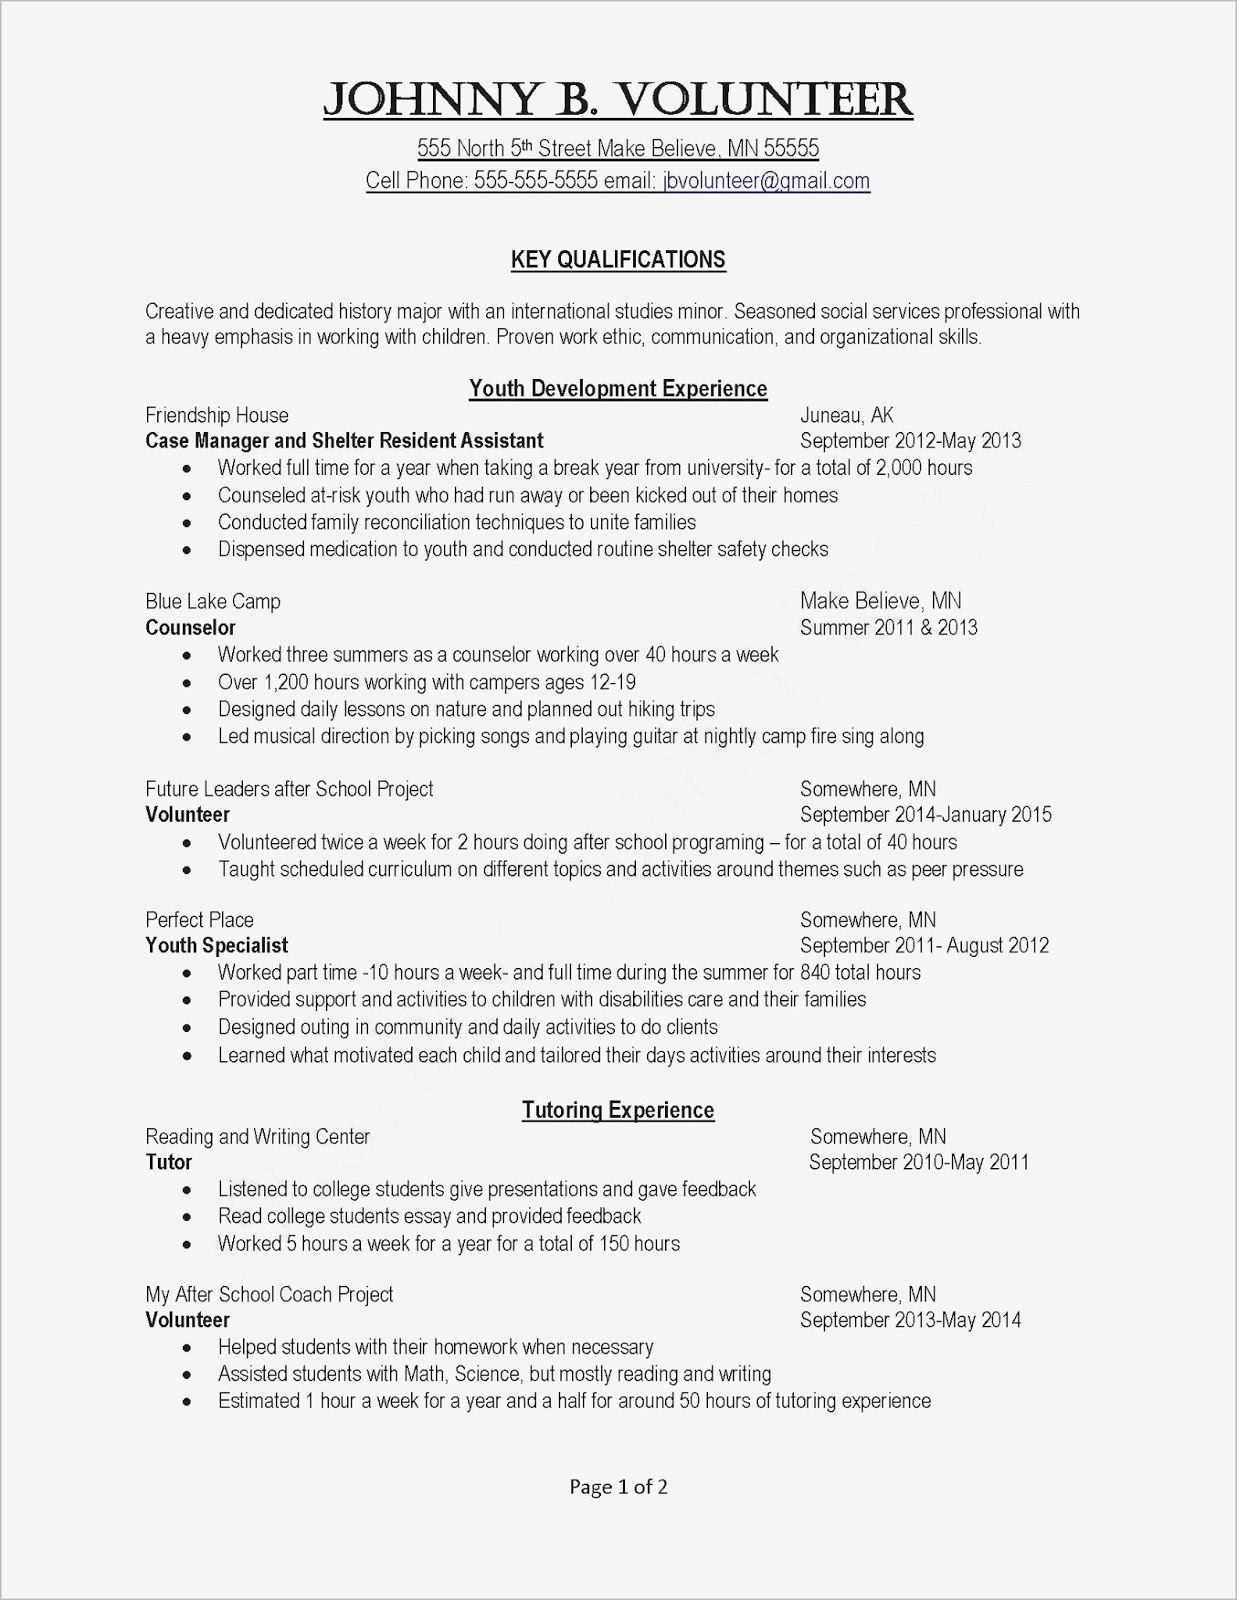 camp counselor resume examples, camp counselor resume examples 2019, camp counselor resume objective examples 2020, resume examples for camp counselor,